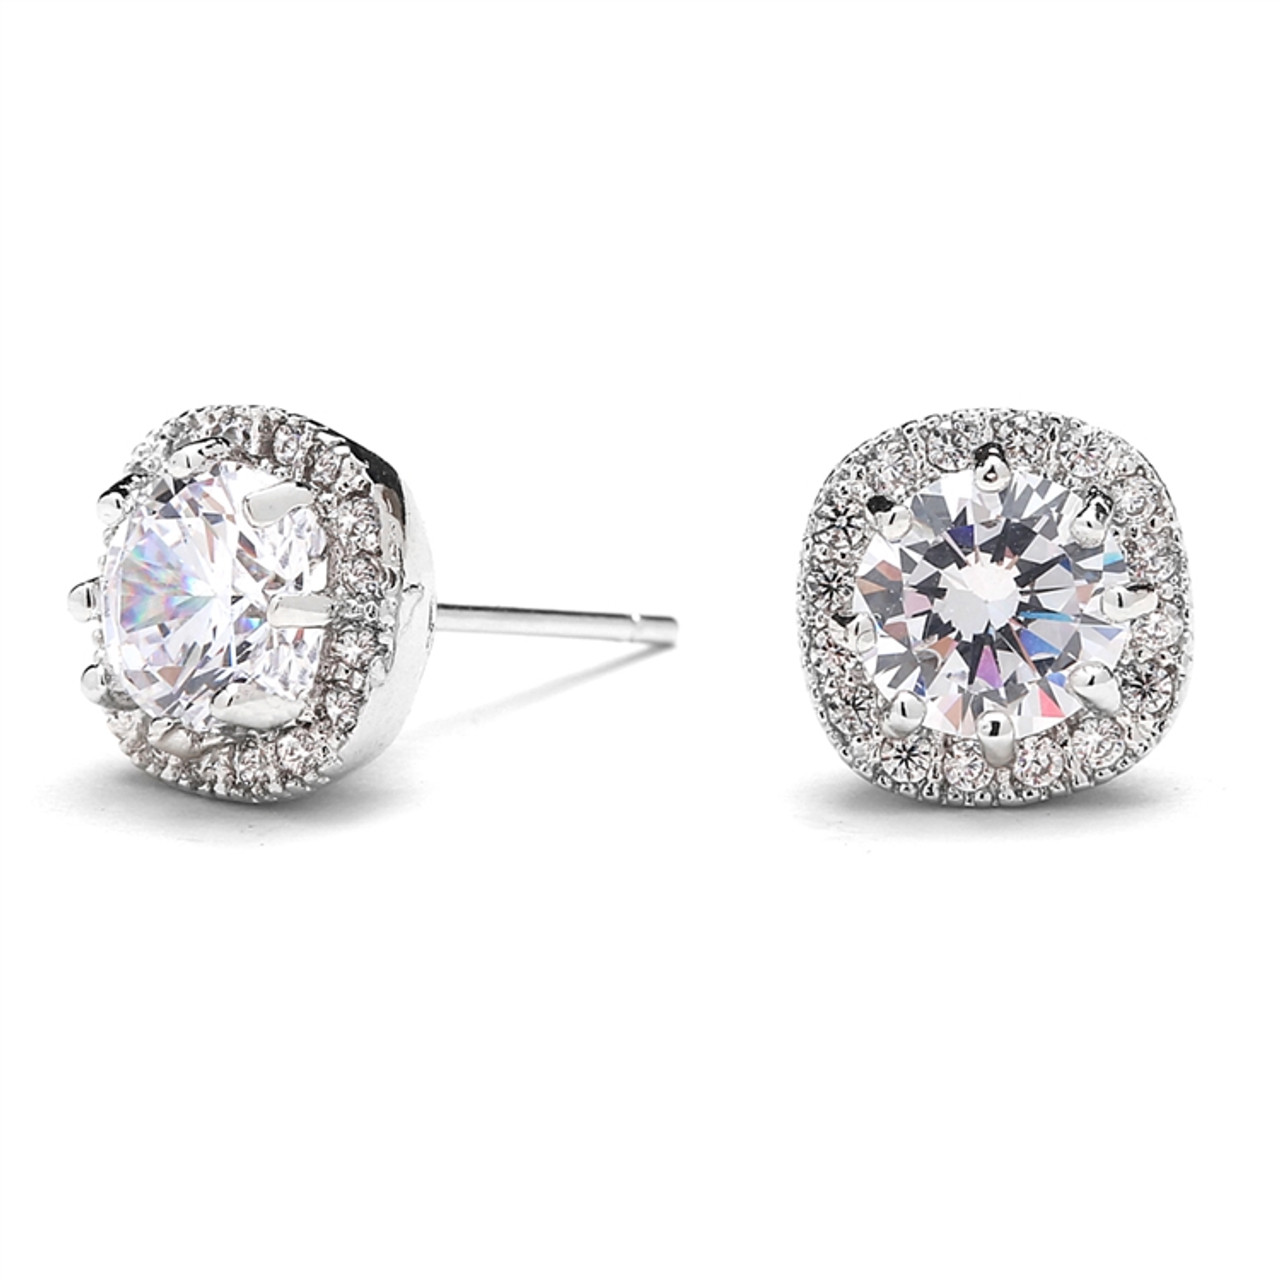 Cubic Zirconia Round Cut Stud Earrings with Halo Rosegold